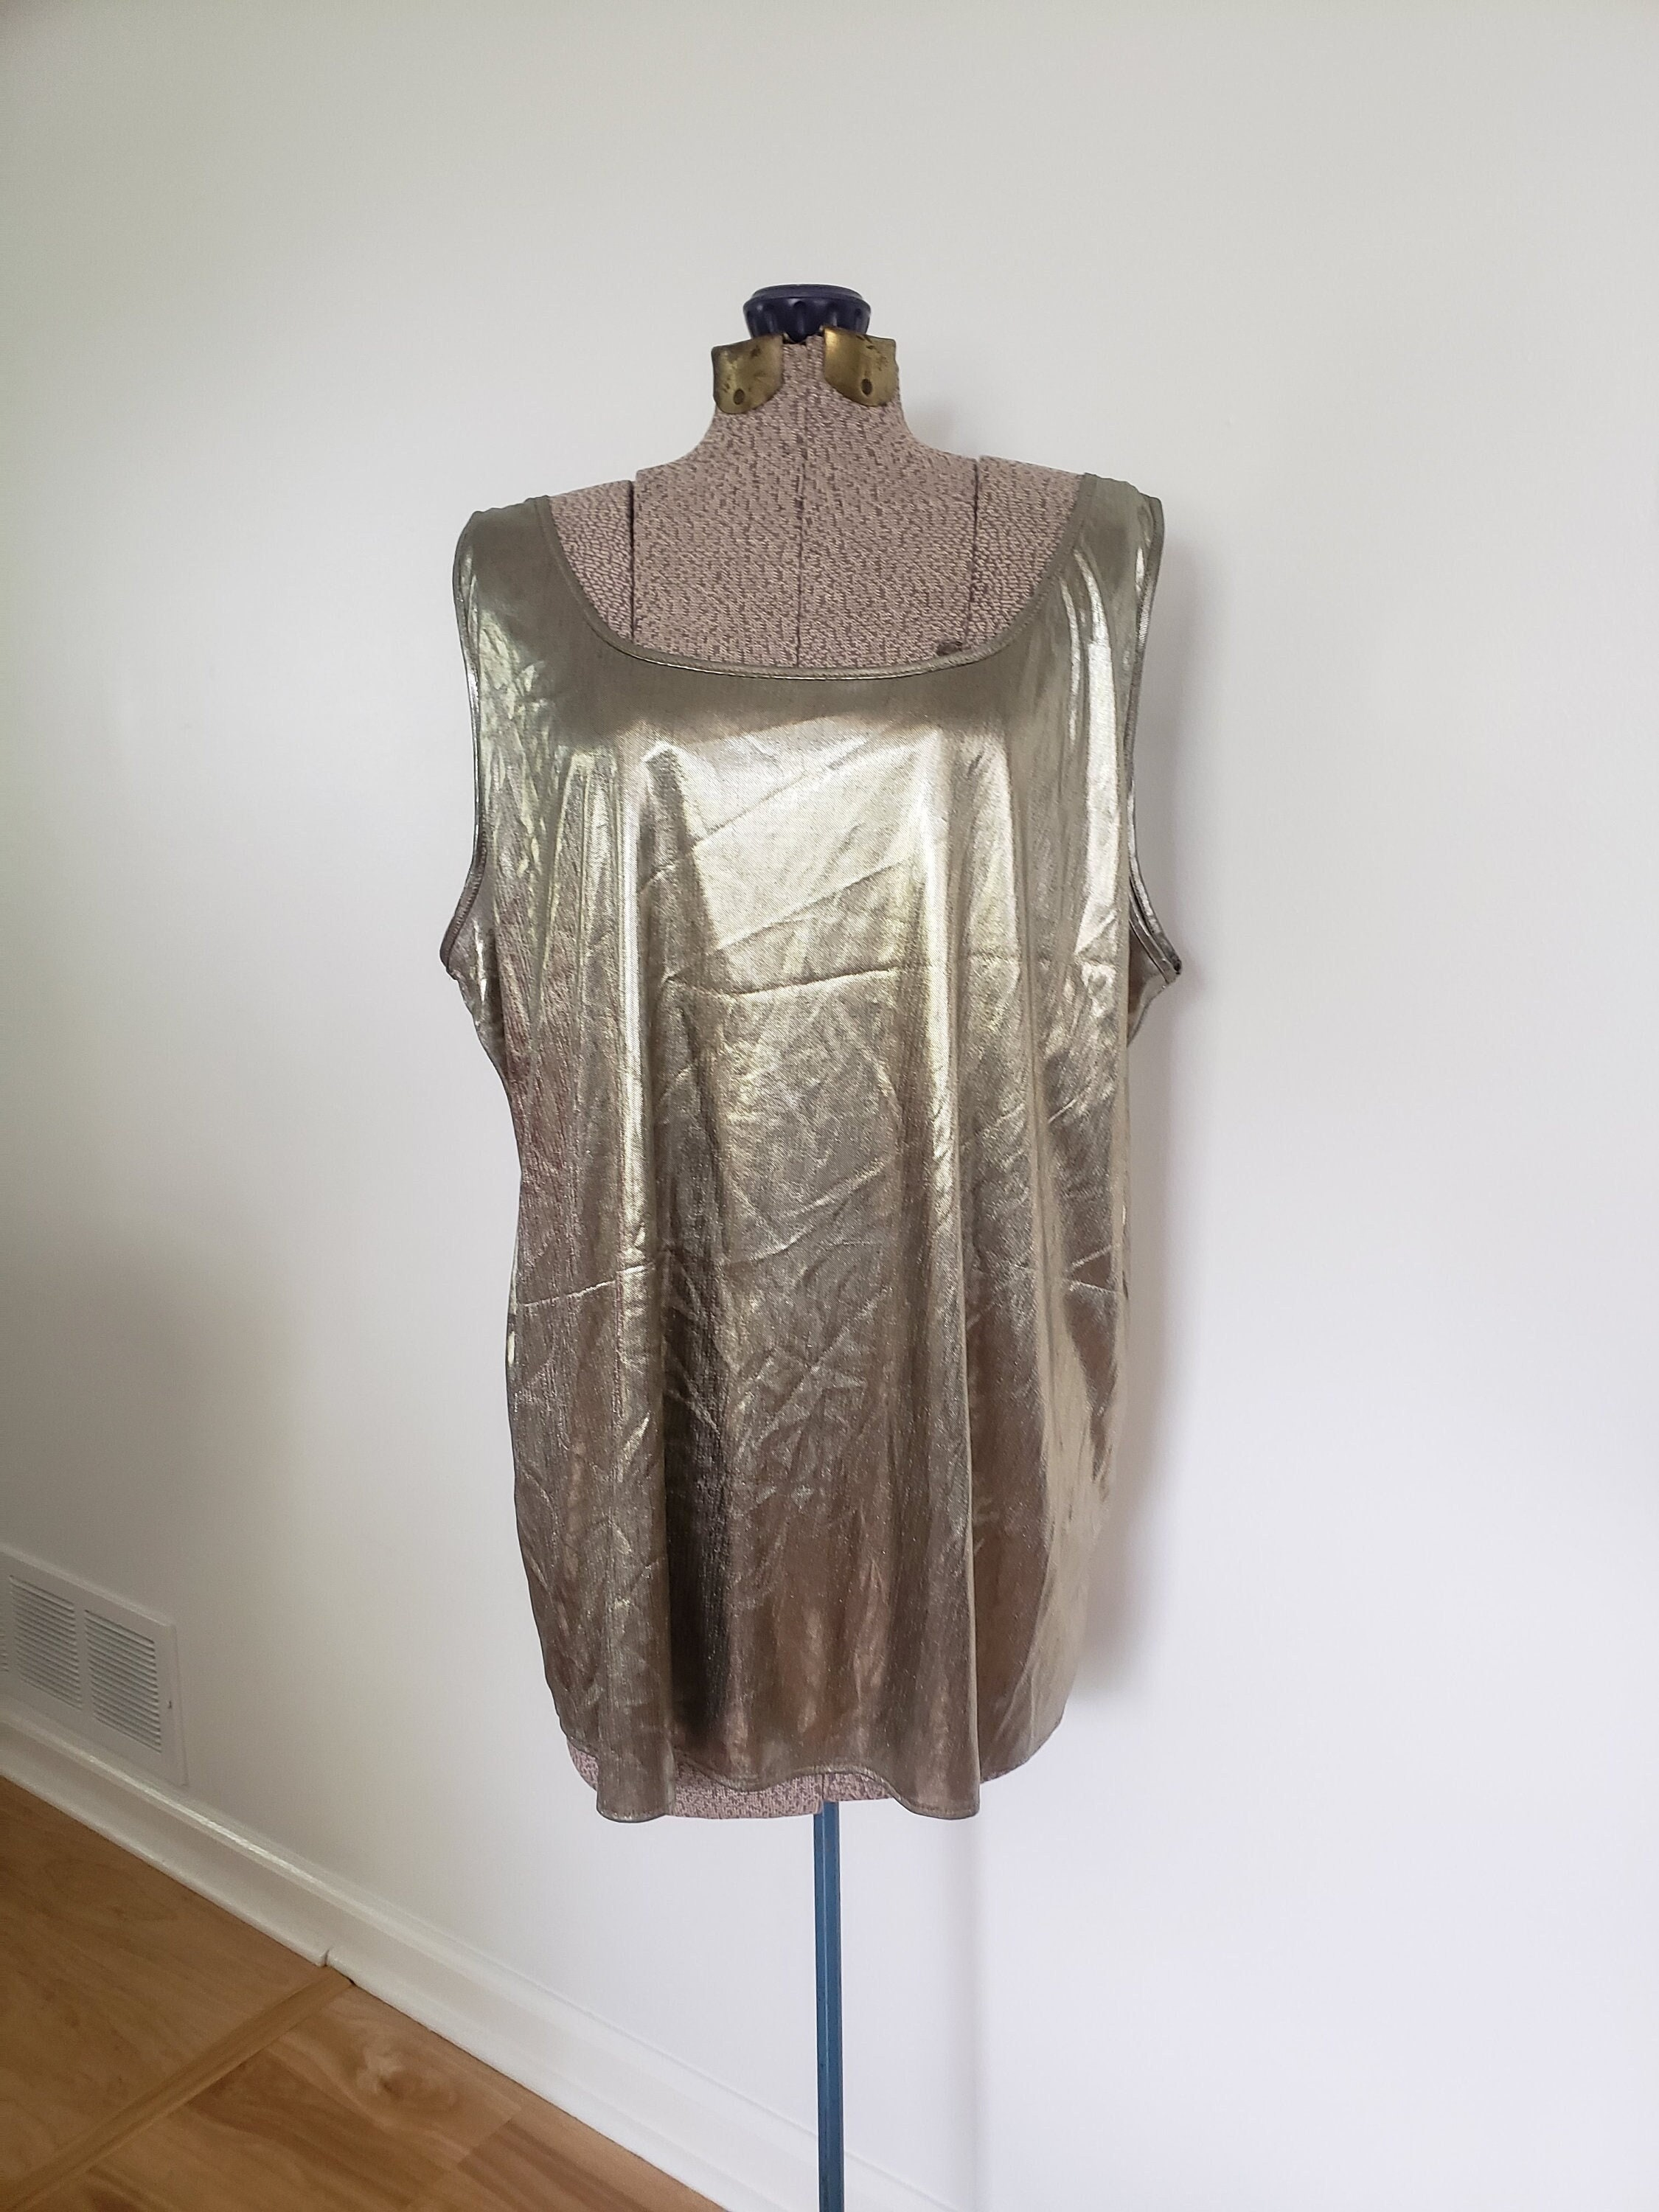 80s Dresses | Casual to Party Dresses Vintage Lucky Me Gold Metallic Tank Top - Retro 1970s 1980s Shiny Disco Clothing Fancy Bodybuilder Muscle Shirt Summer Party $14.00 AT vintagedancer.com